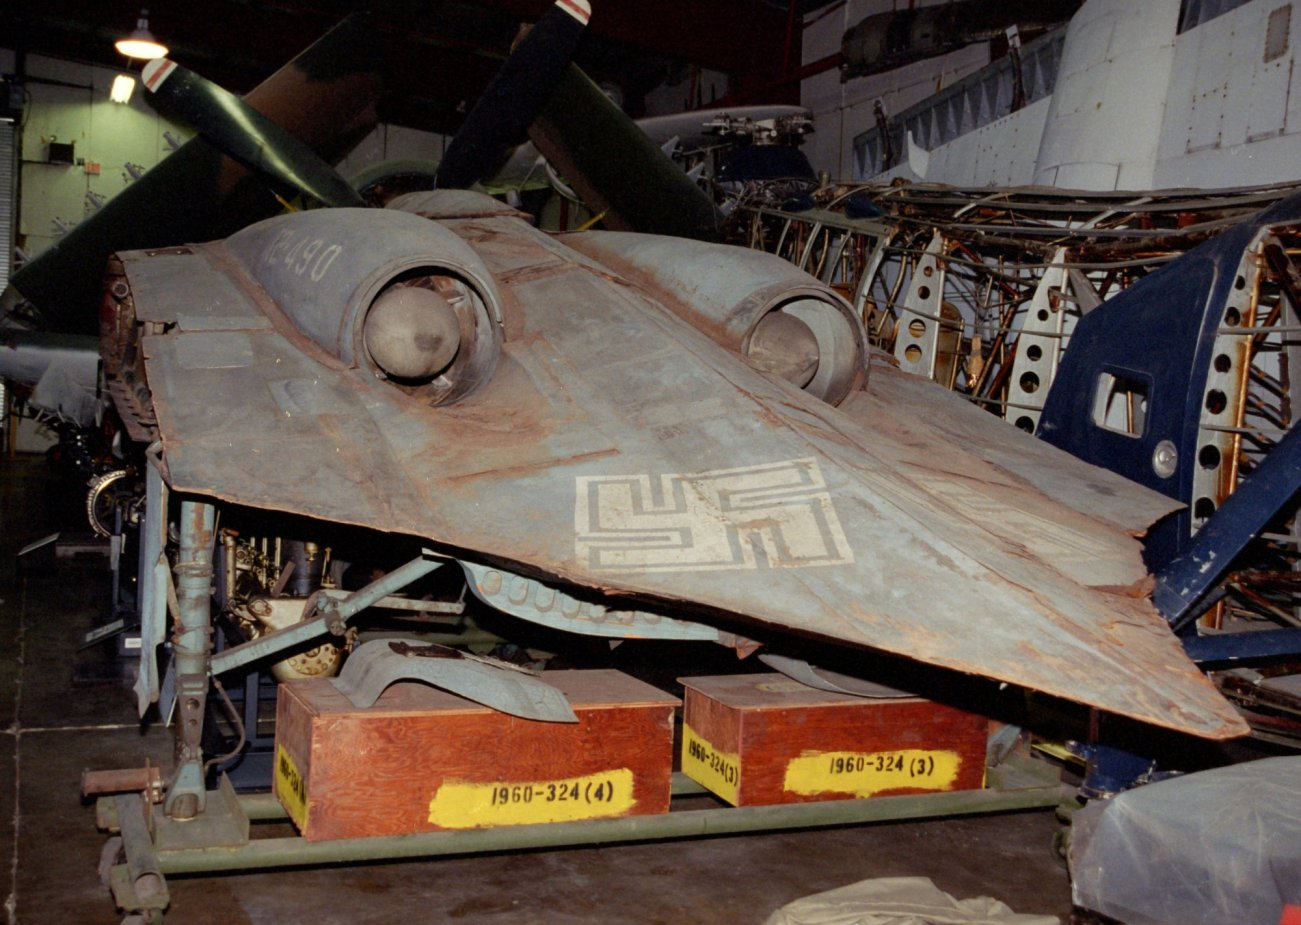 Adolf Hitler's Ho 229 Nazi 'Stealth' Fighter Was Very Real (This Picture Proves It)